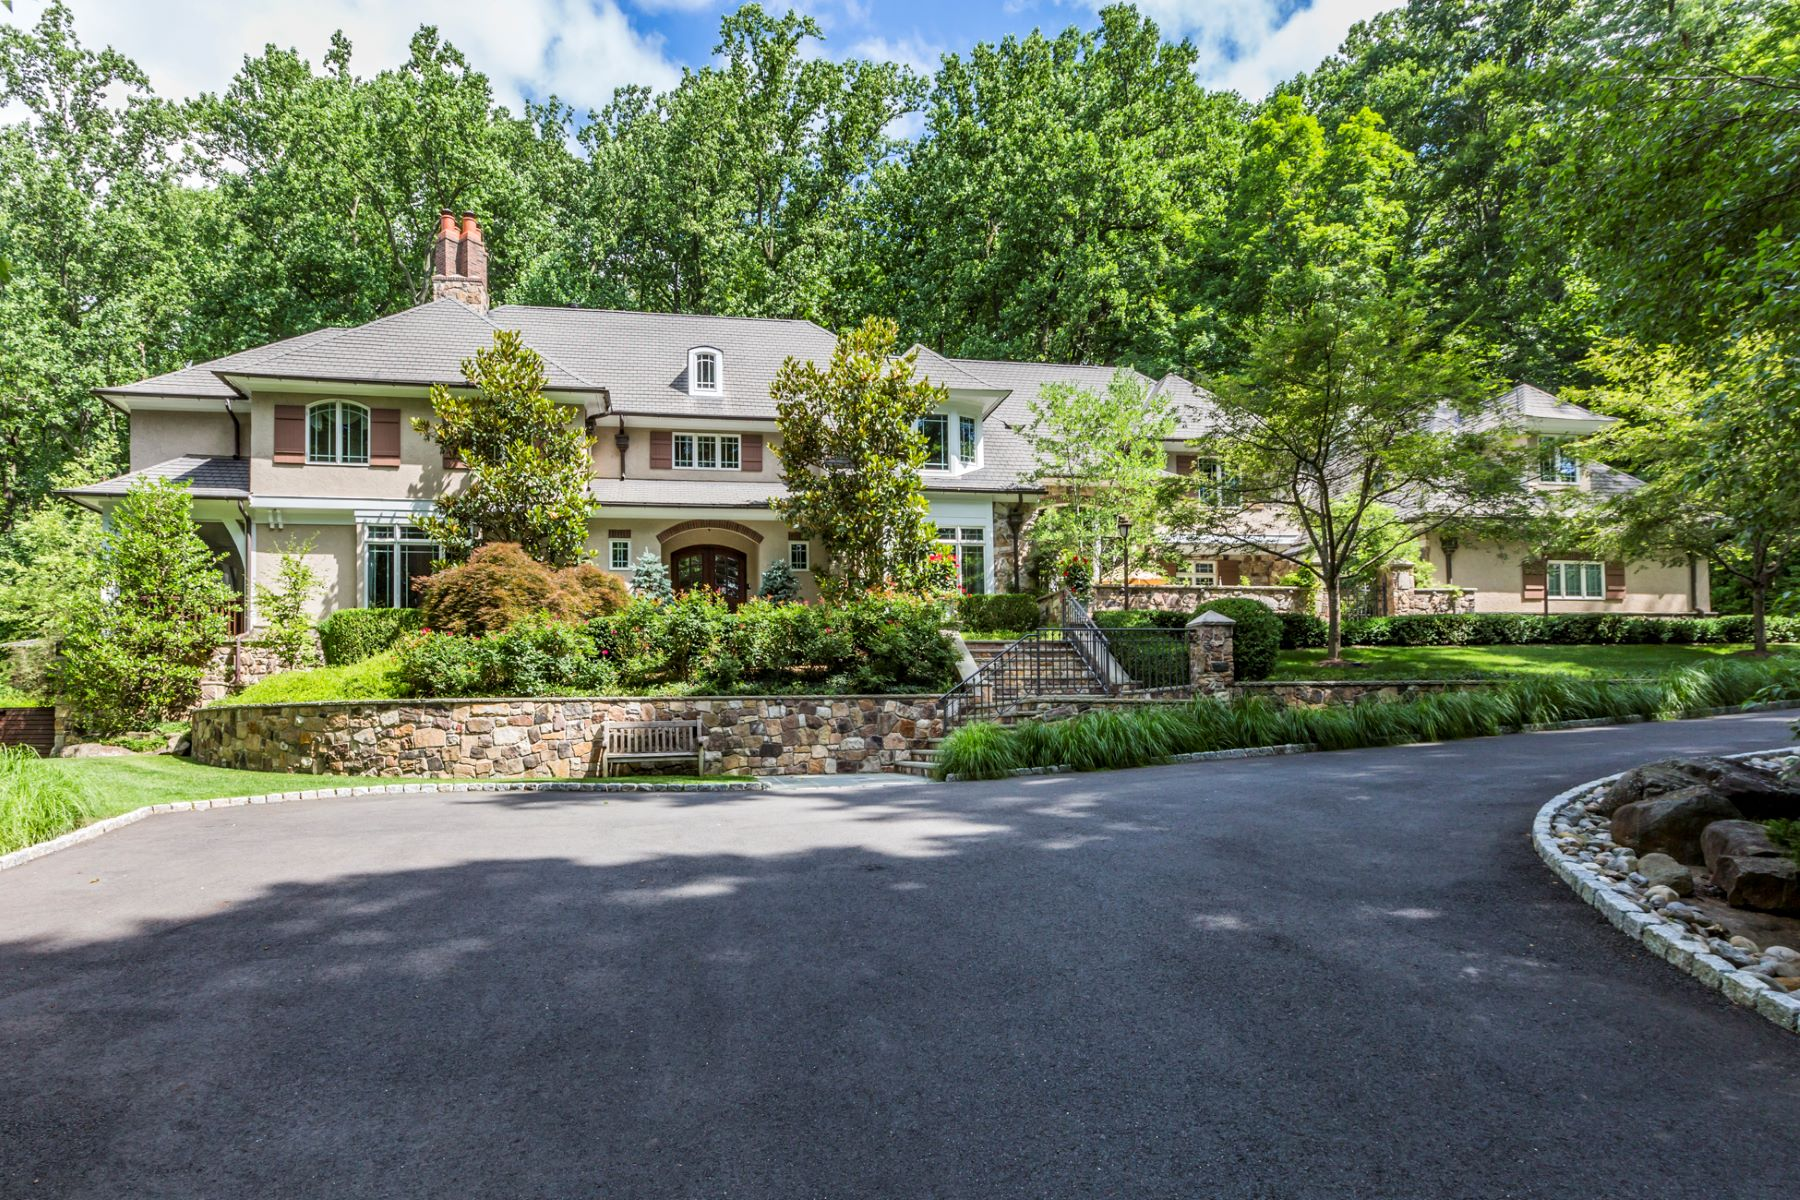 Single Family Homes for Sale at Spectacular Sanctuary 44 Cradle Rock Road, Princeton, New Jersey 08540 United States